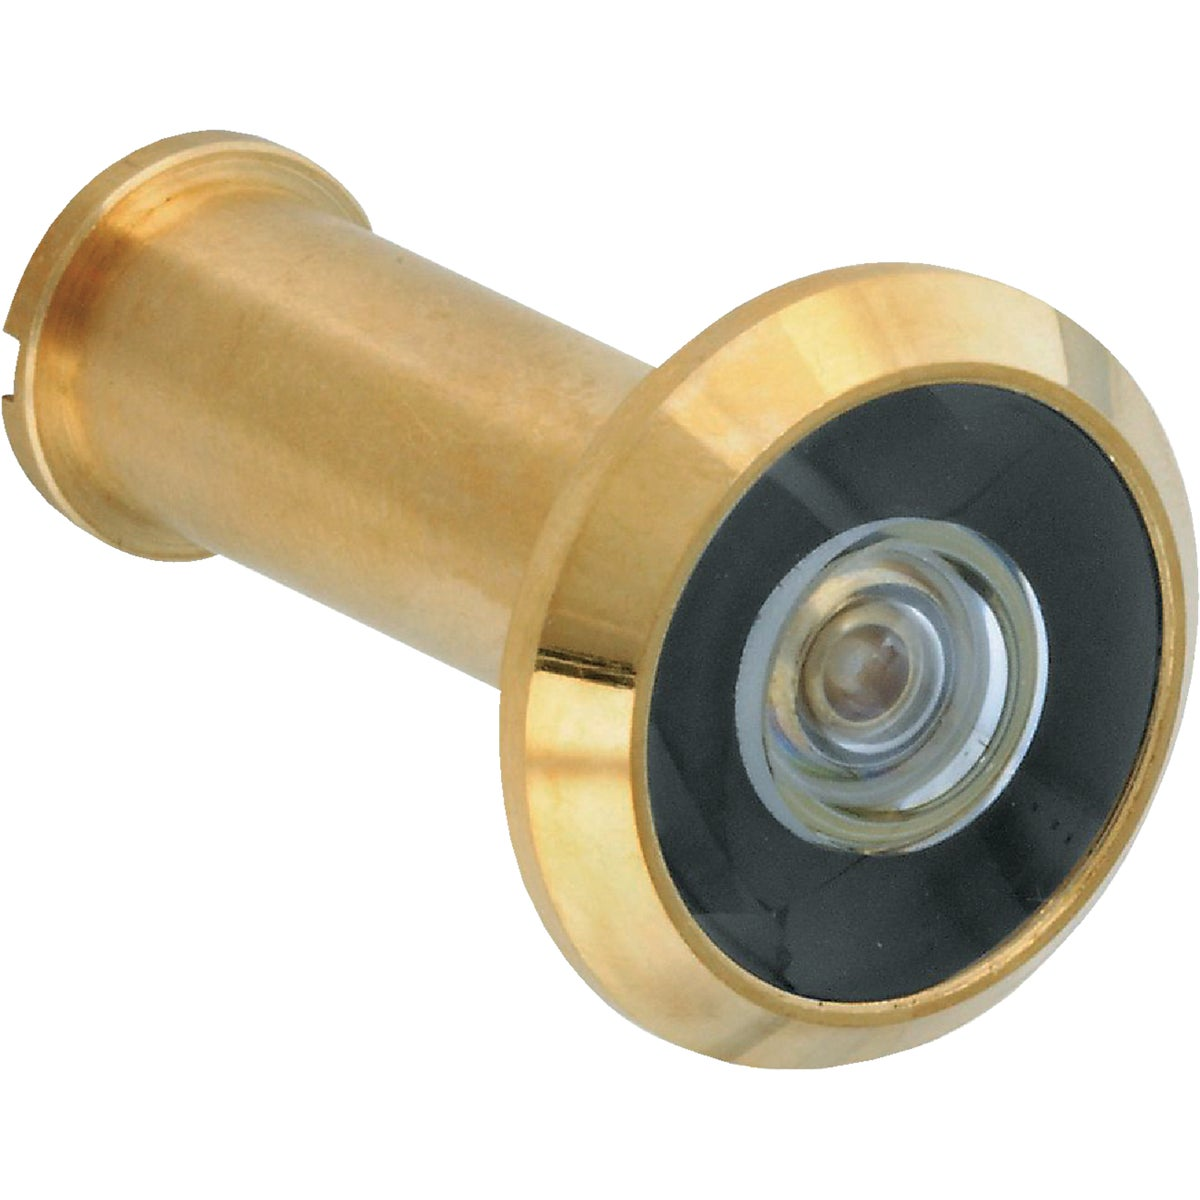 SOLID BRASS DOOR VIEWER